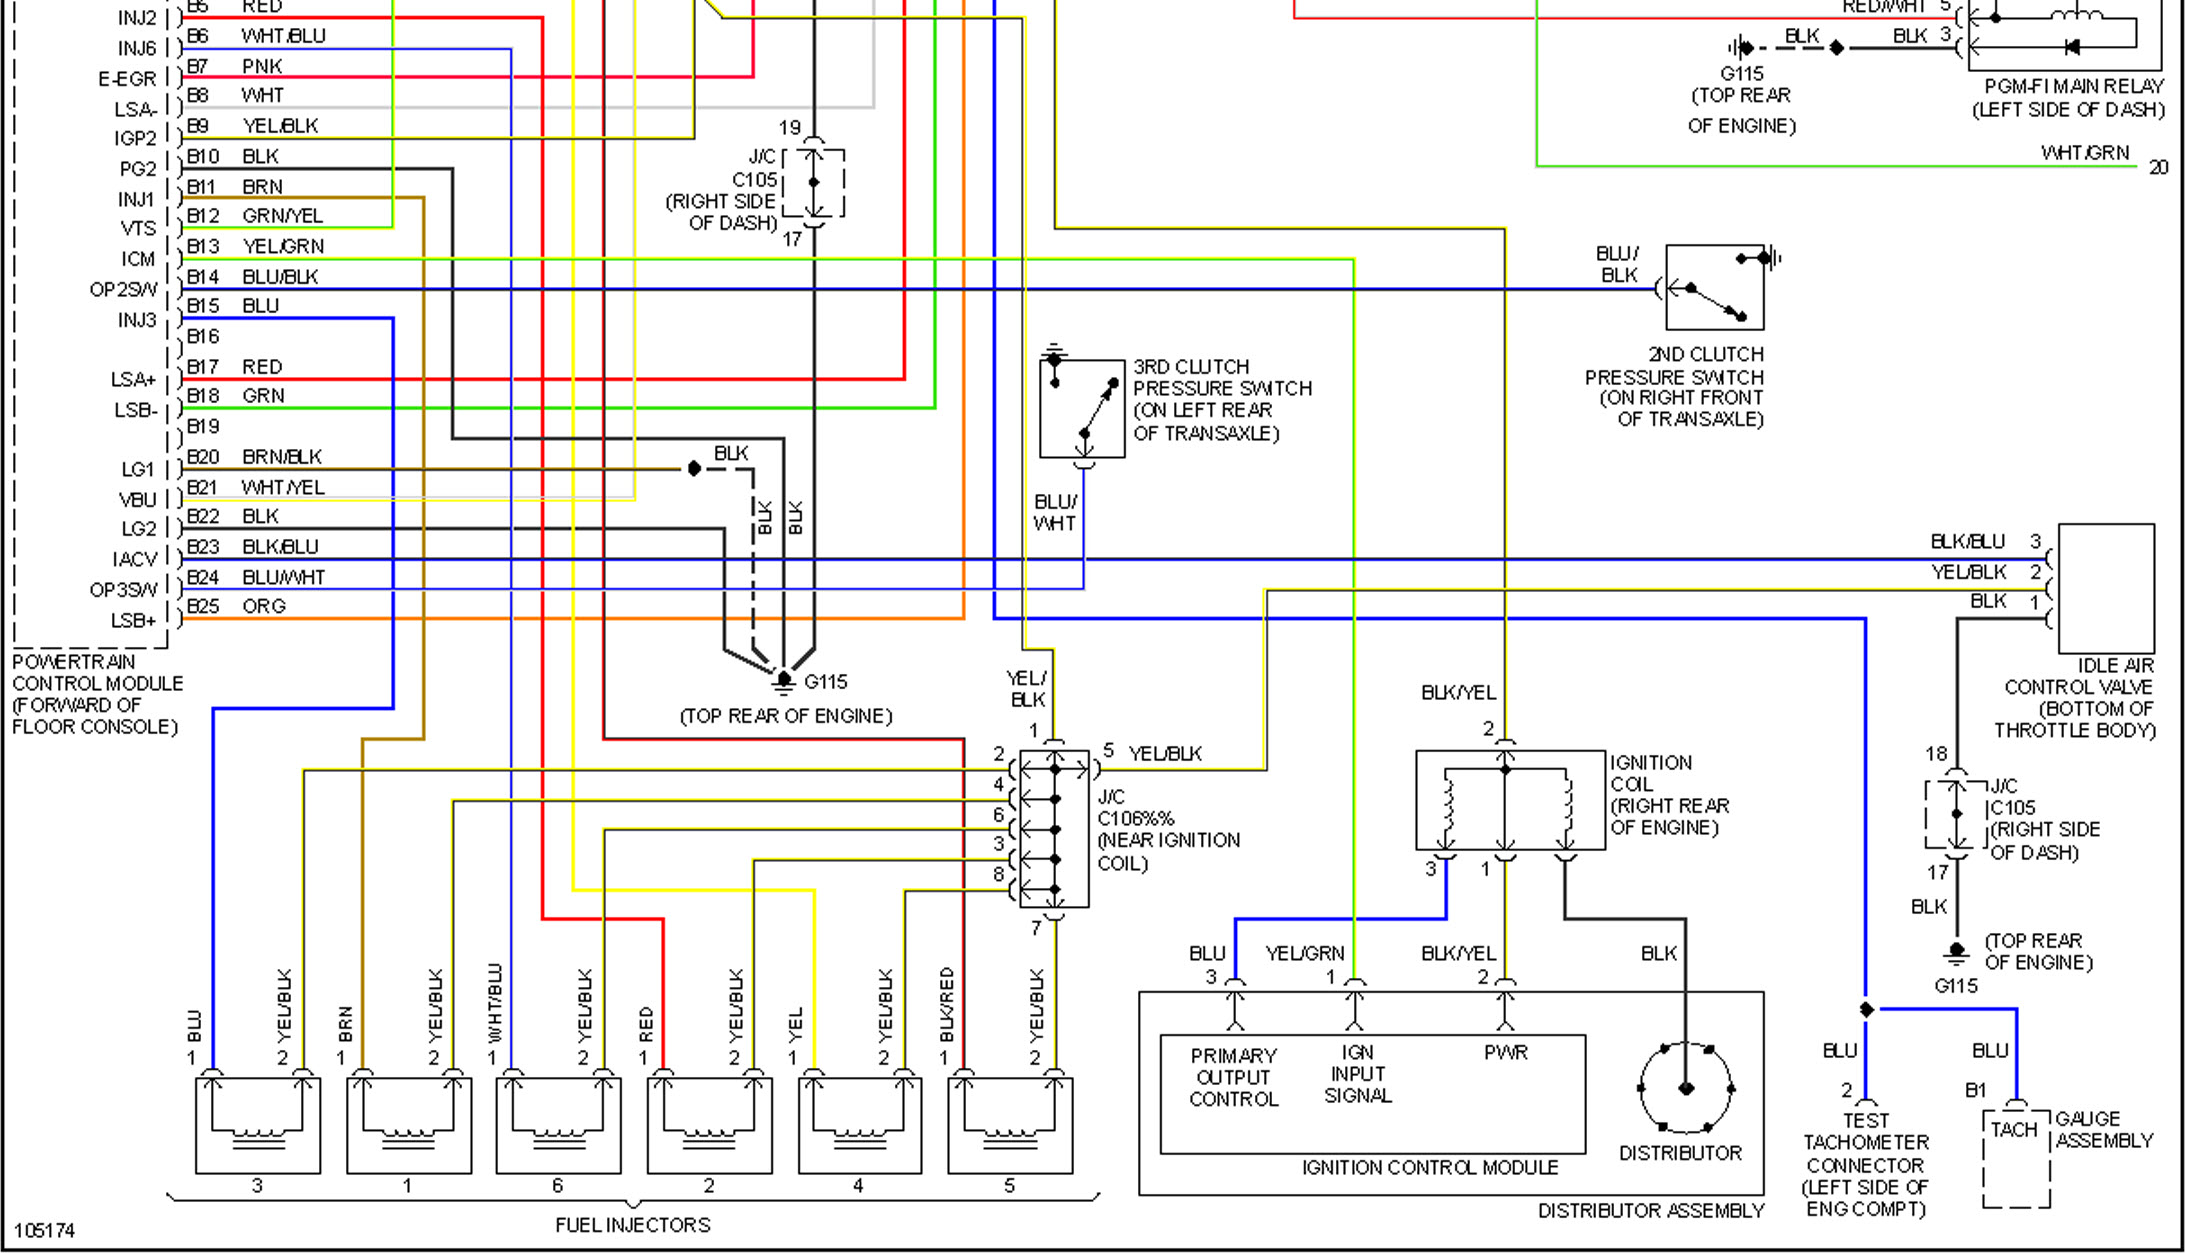 1999 Honda Civic Radio Wiring Diagram from www.2carpros.com